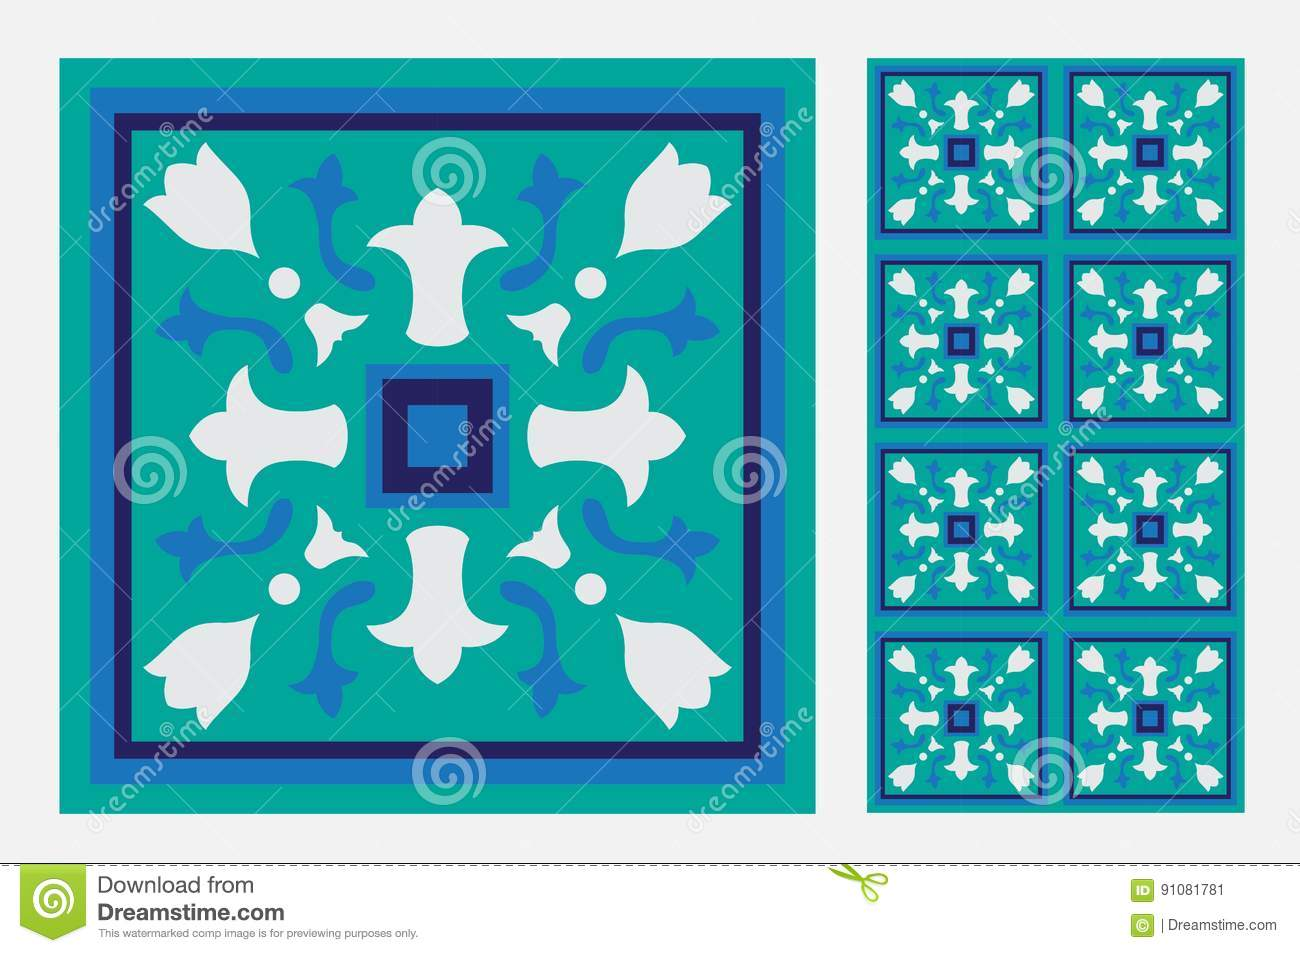 Vintage tile stock vector. Illustration of covering, exterior - 91081781